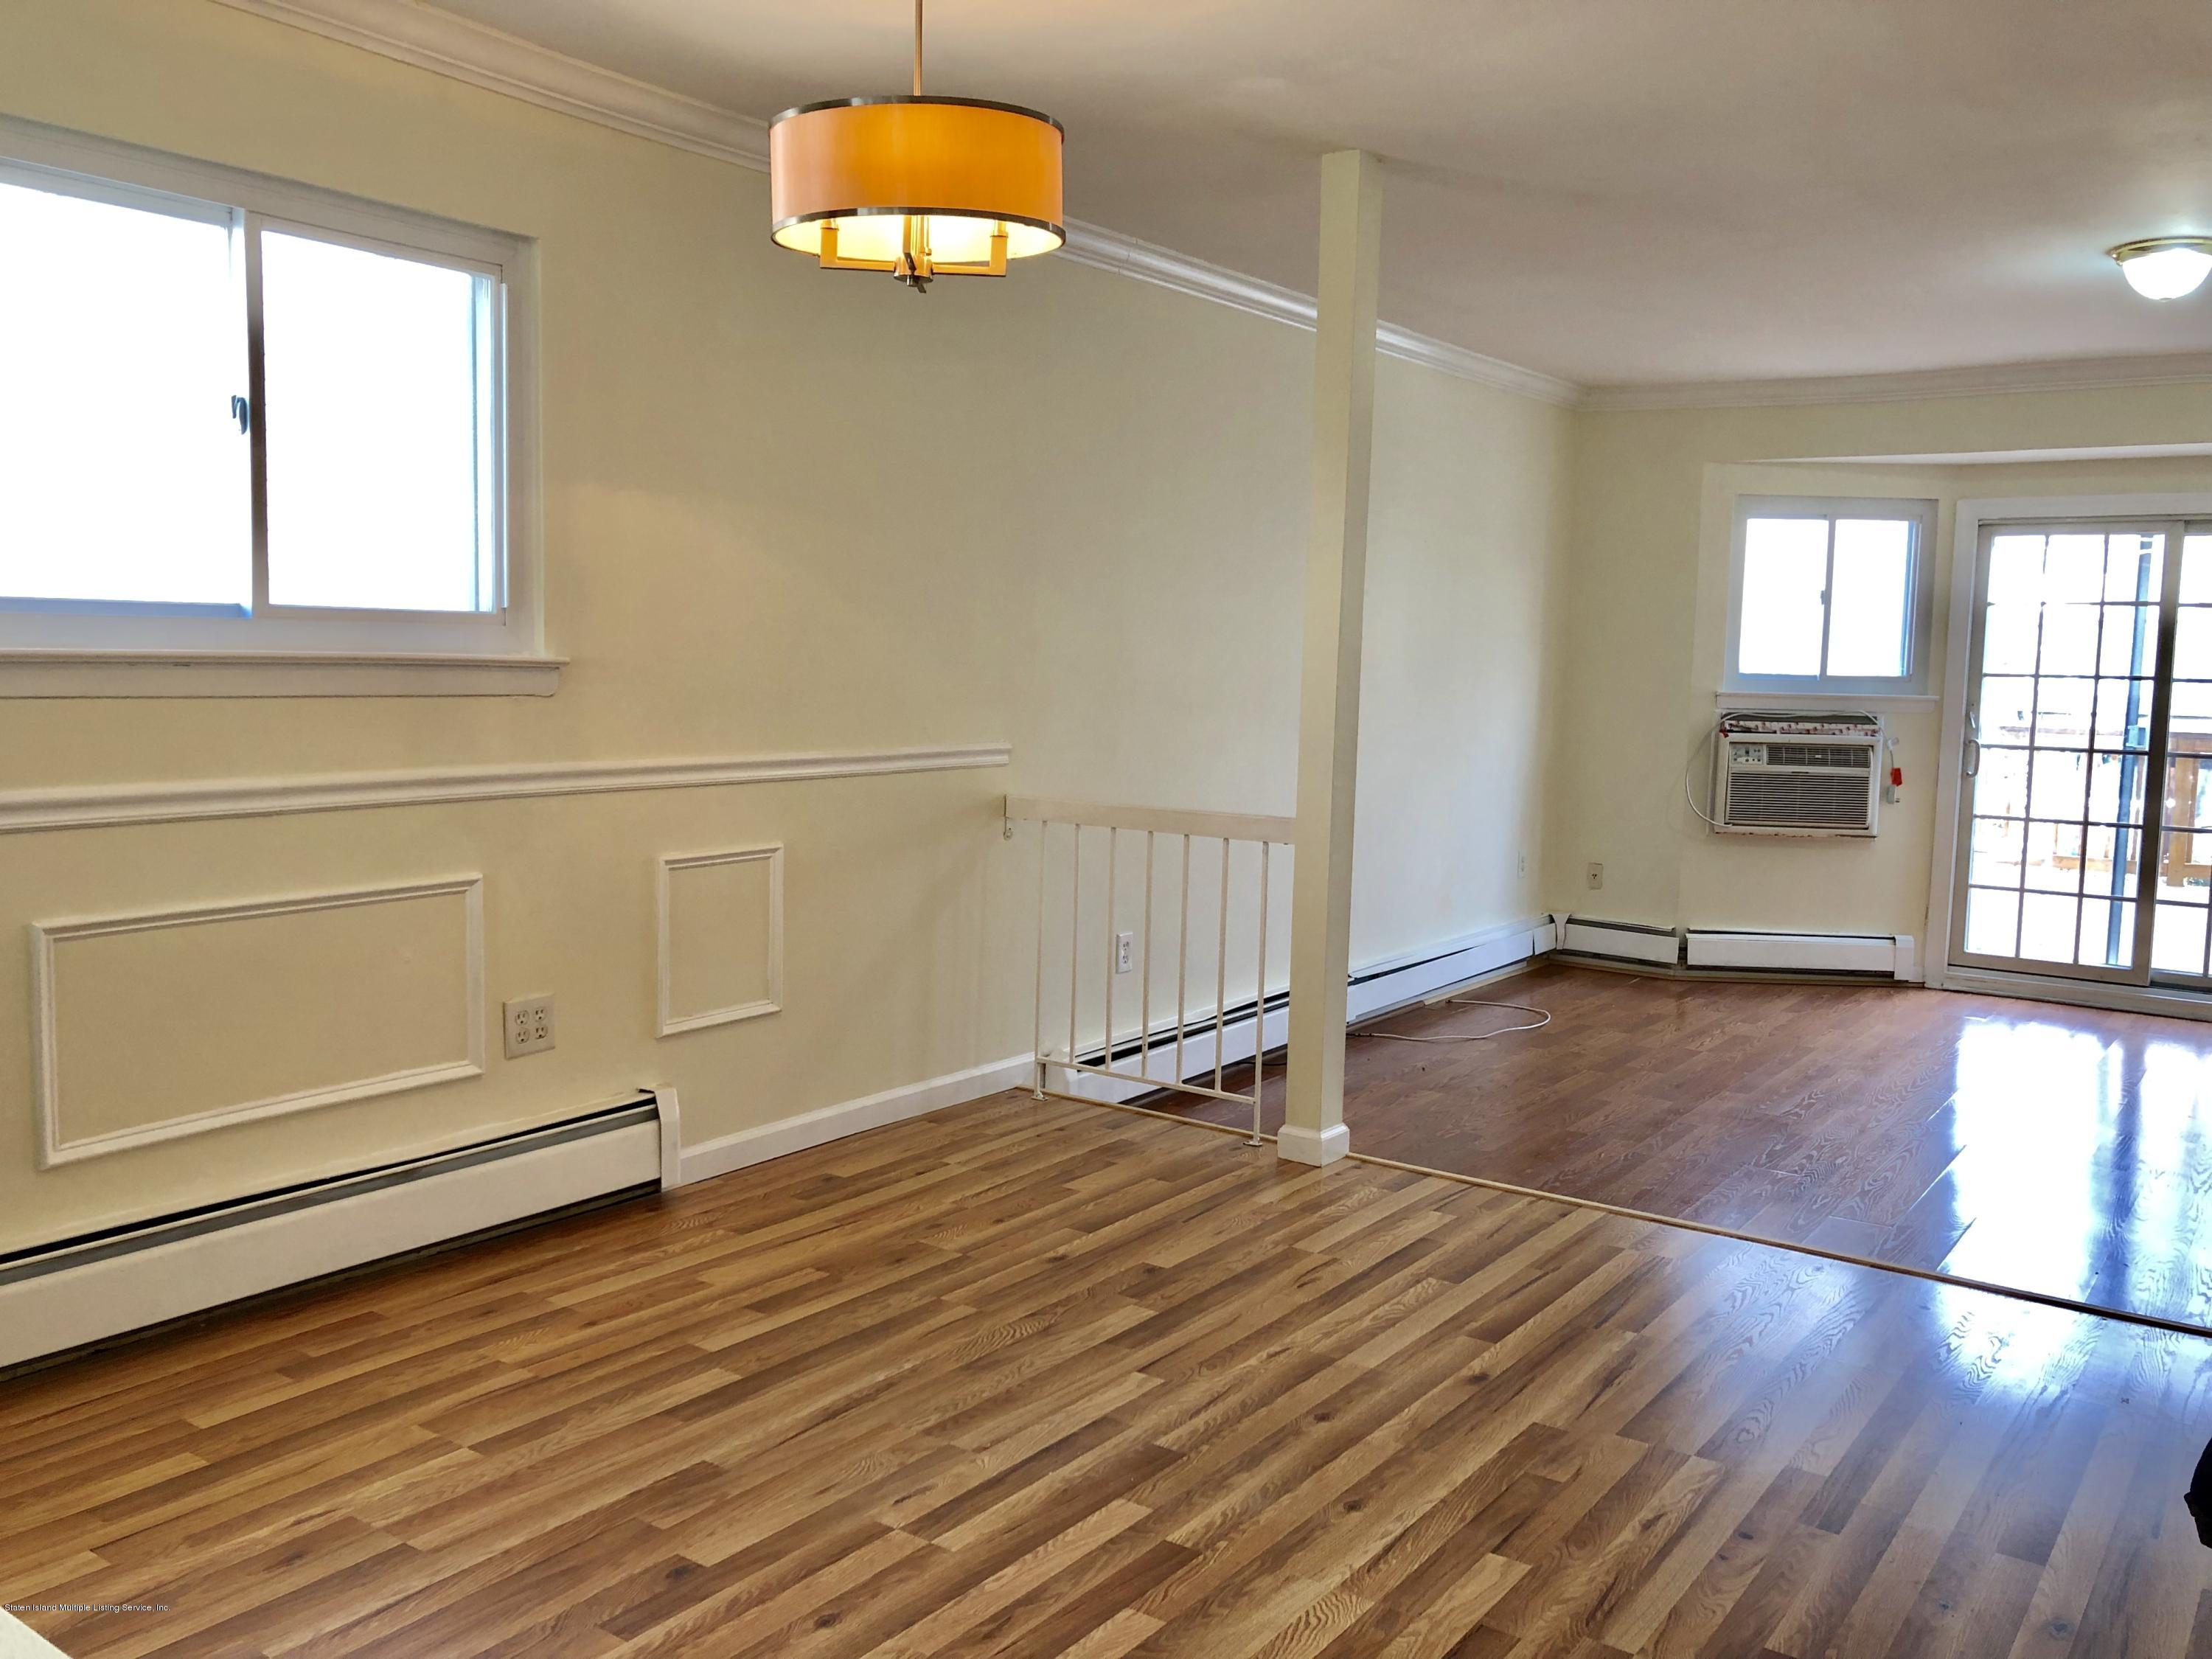 Single Family - Semi-Attached 205 Mcveigh Avenue  Staten Island, NY 10314, MLS-1123847-10